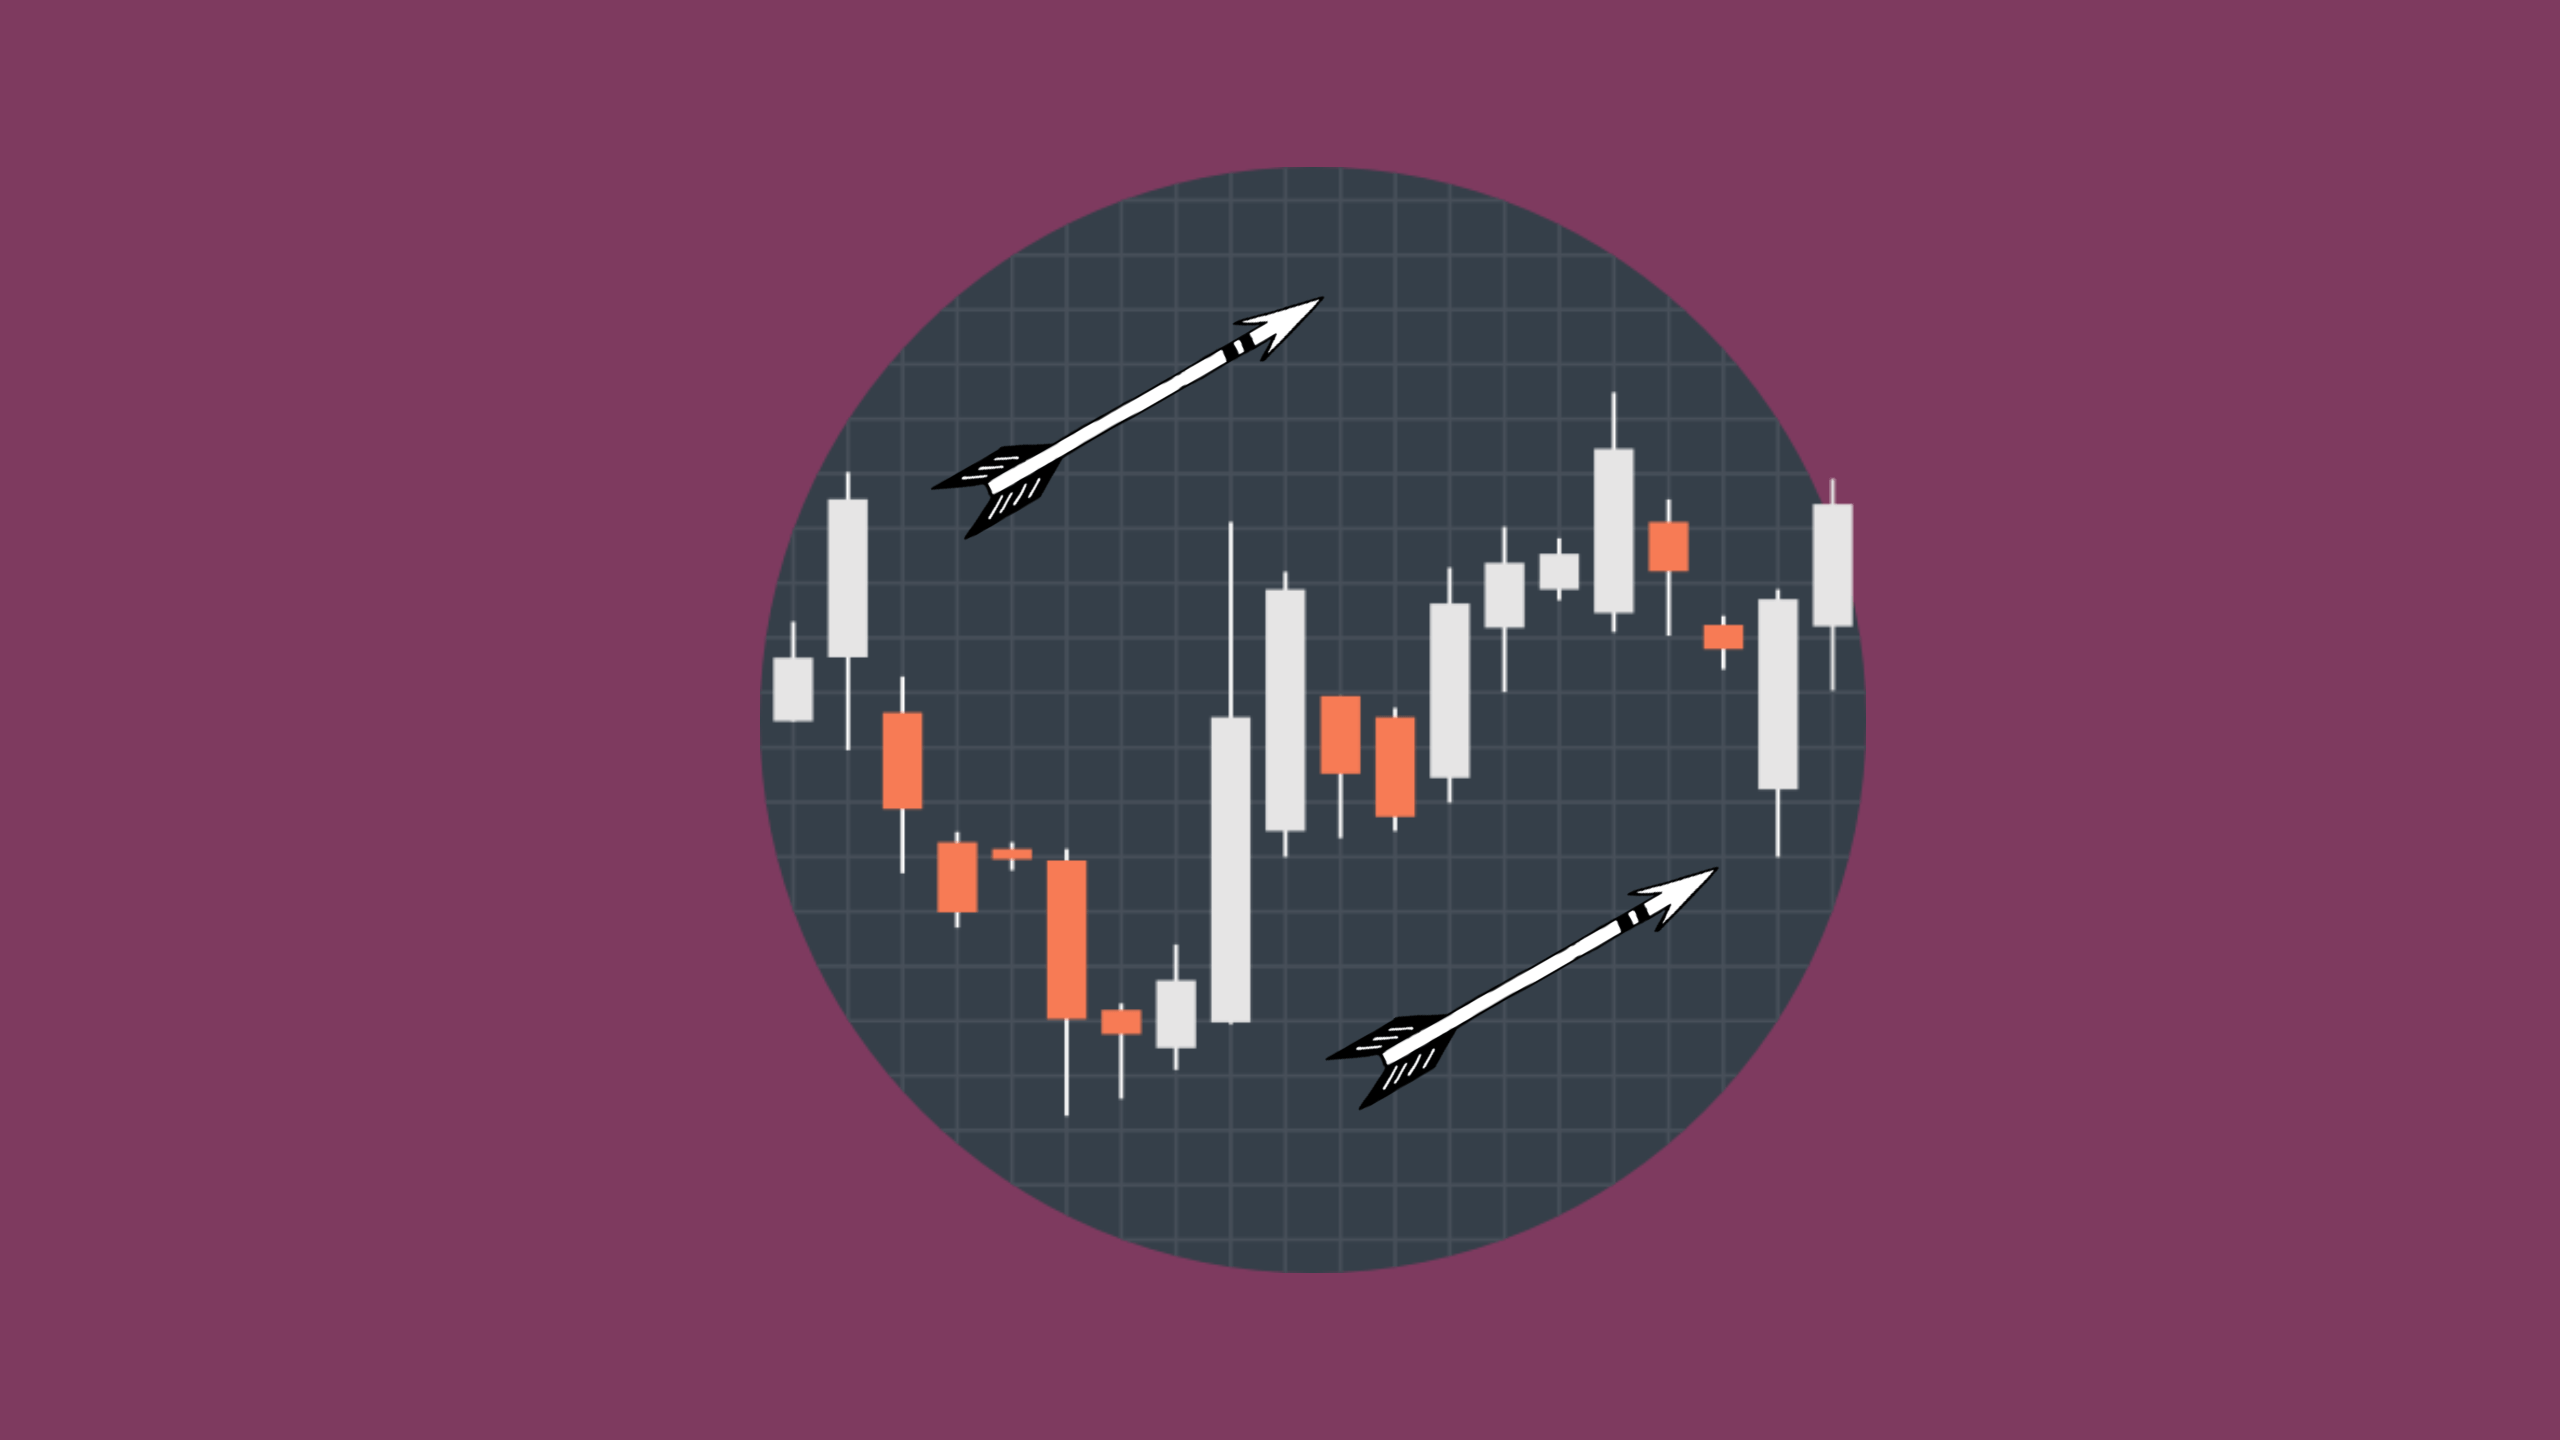 A circular image of a stock market chart sits on a purple background to illustrate that the blog post is about 5 Simple Grammar Tricks to go from 6 to 7 in IELTS writing